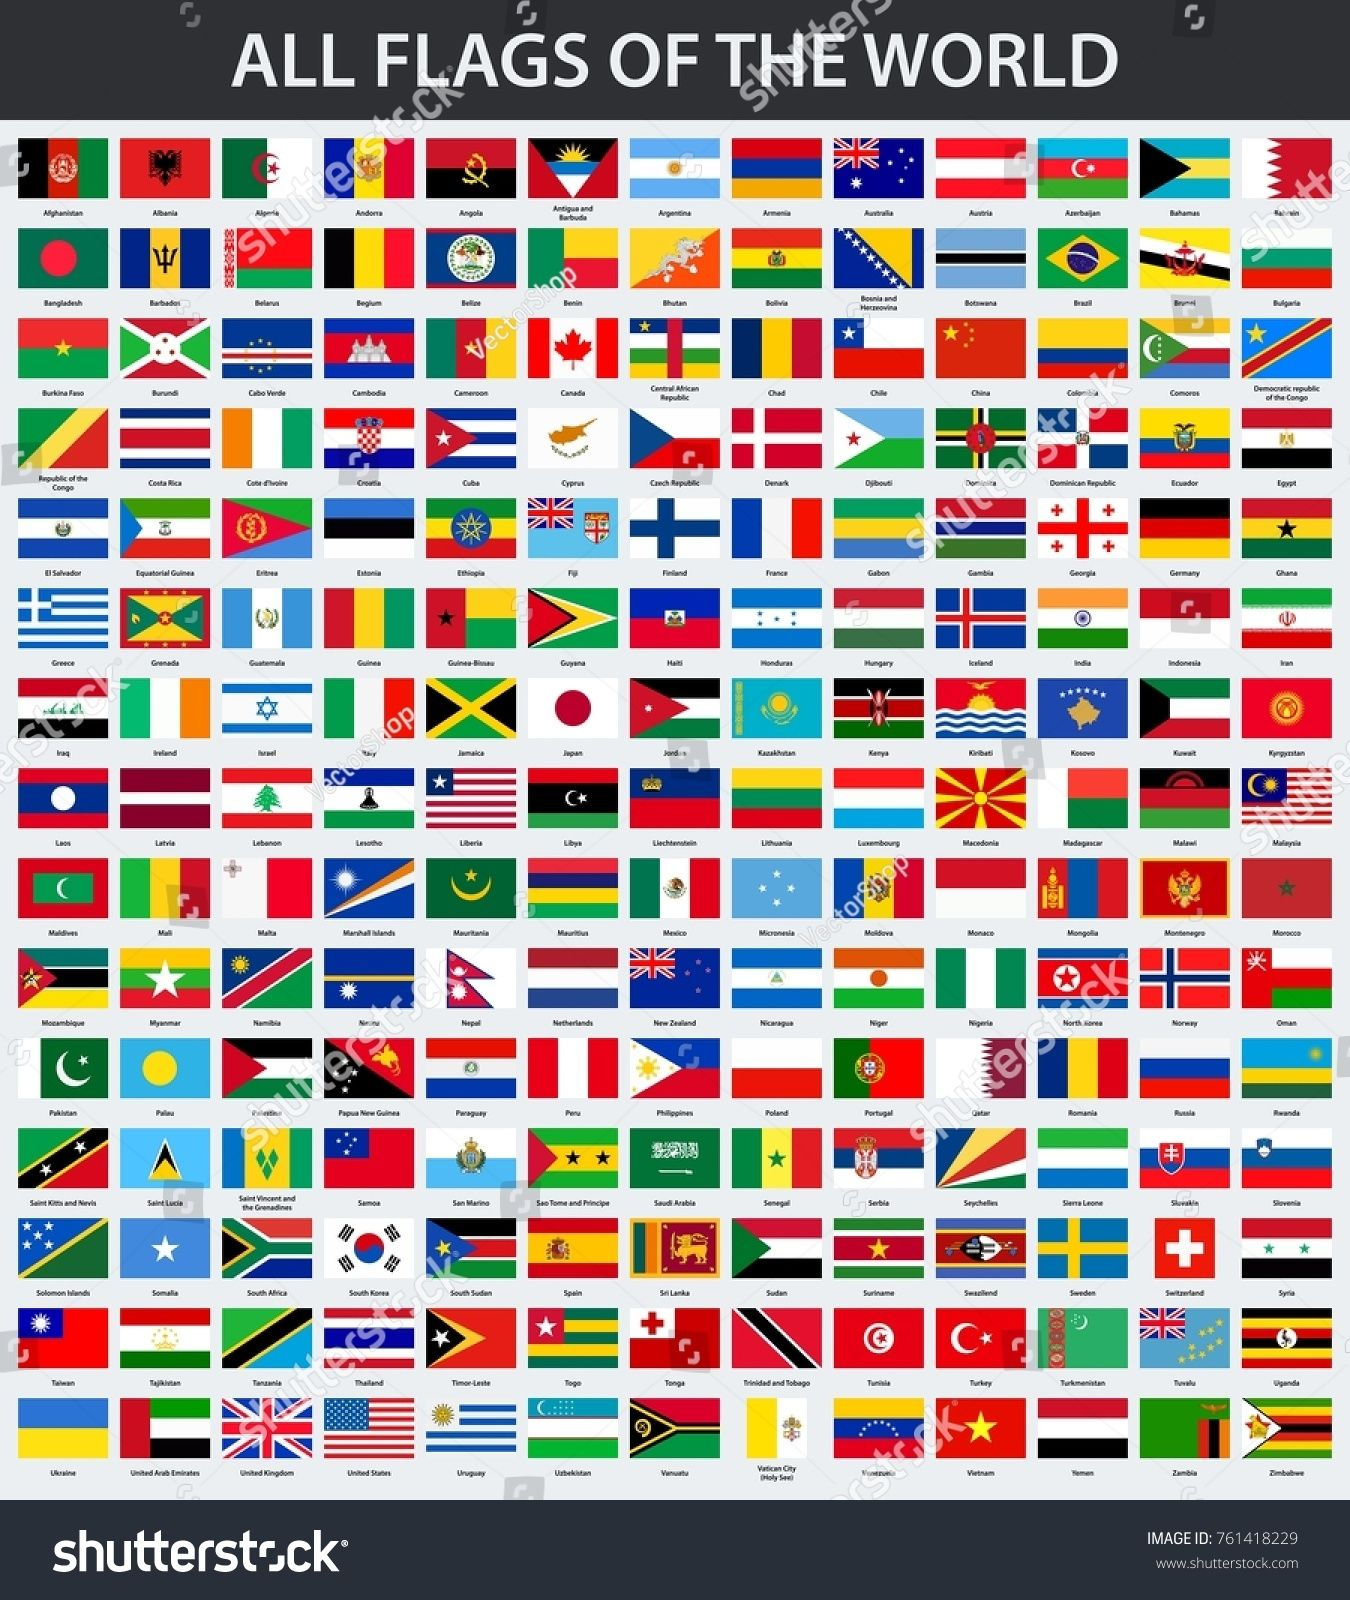 All Flags Of The World In Alphabetical Order World Flags Order Alphabetical In 2020 Flags Of The World All Flags Alphabetical Order